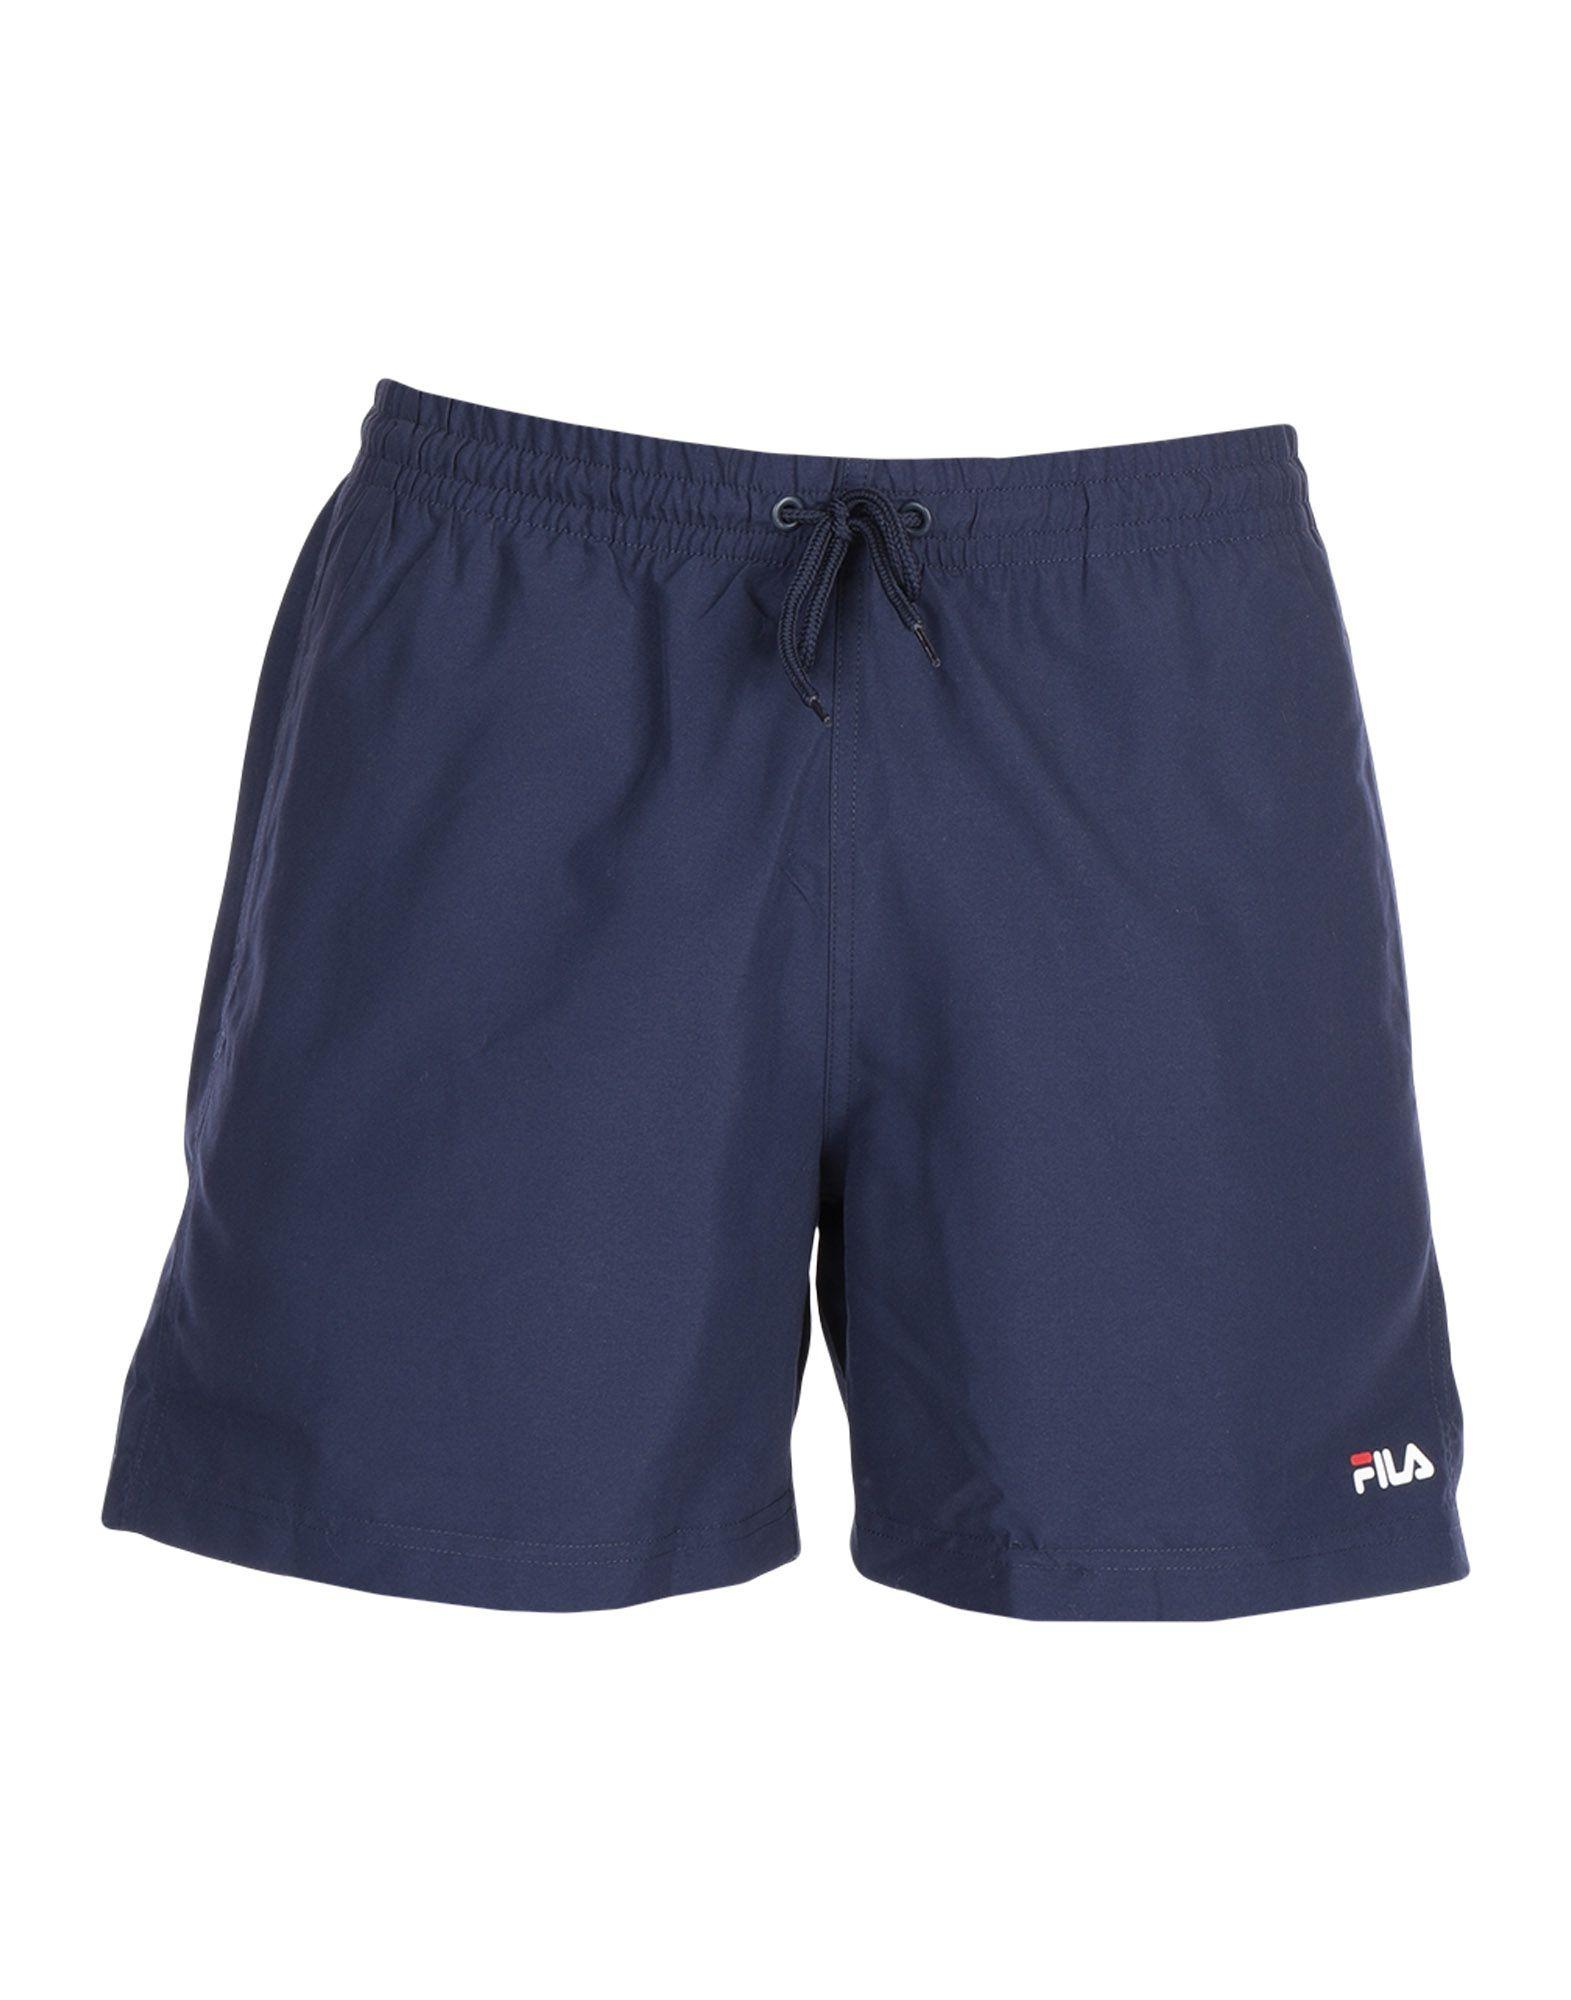 ef26306ad3232 Fila Swimming Trunks in Blue for Men - Save 6% - Lyst